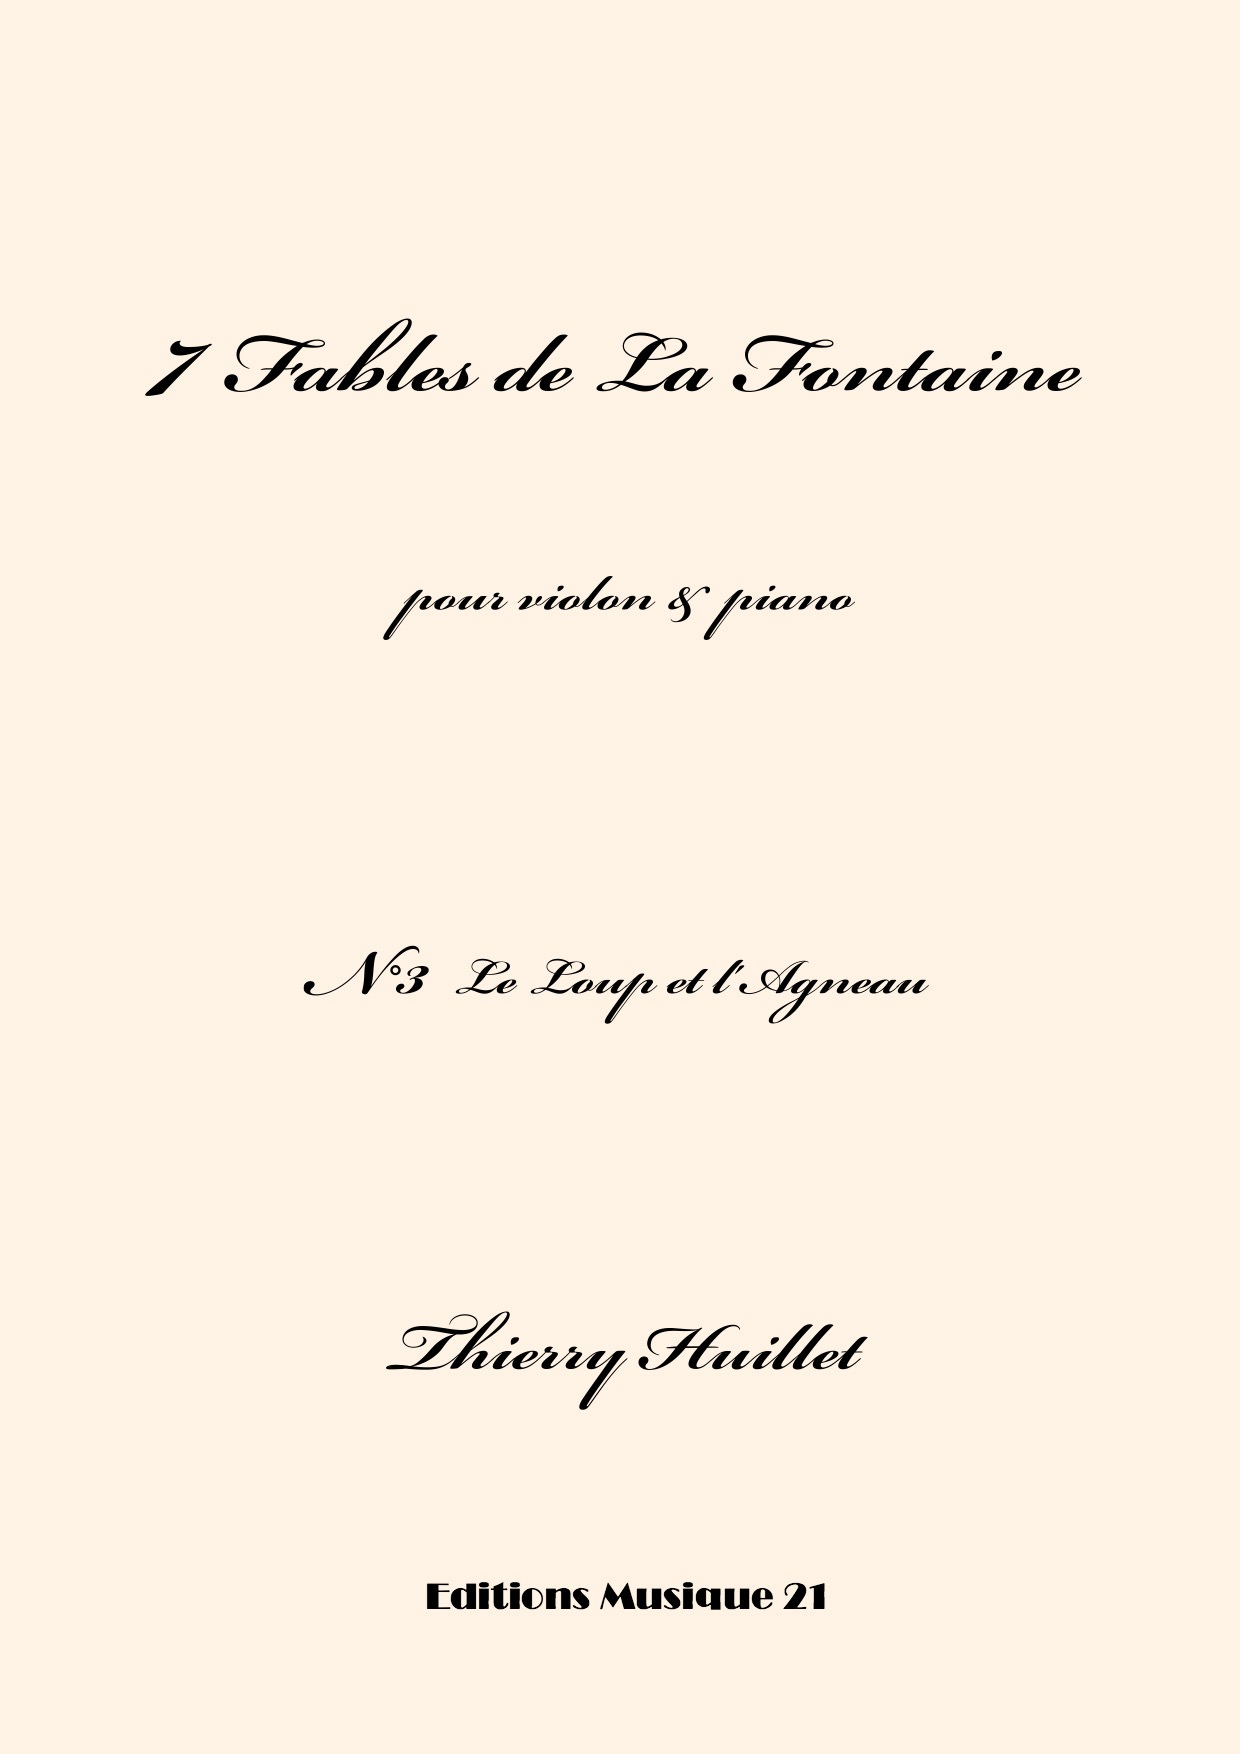 Thierry HUILLET – Le Loup Et L'Agneau, N°3 From 7 Fables De La Fontaine, For Violin And Piano